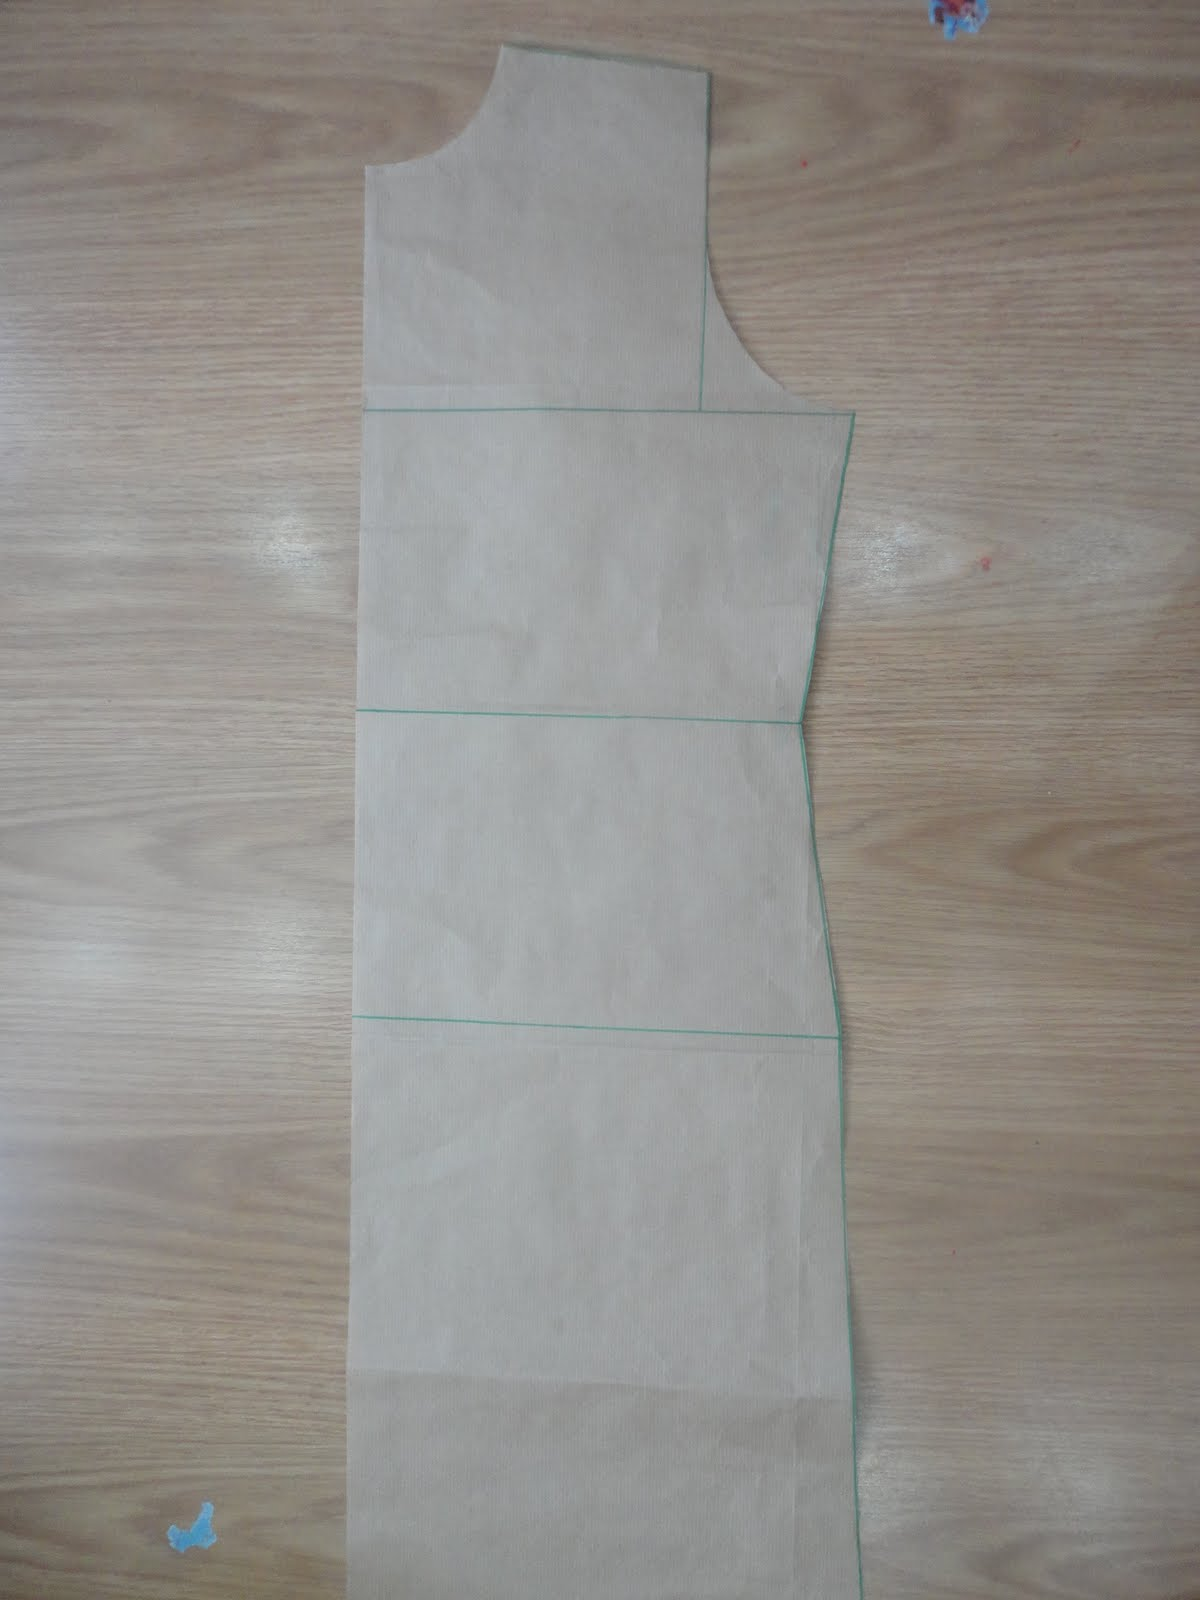 gazals-blog: Kameez Cutting Step by Step Guide